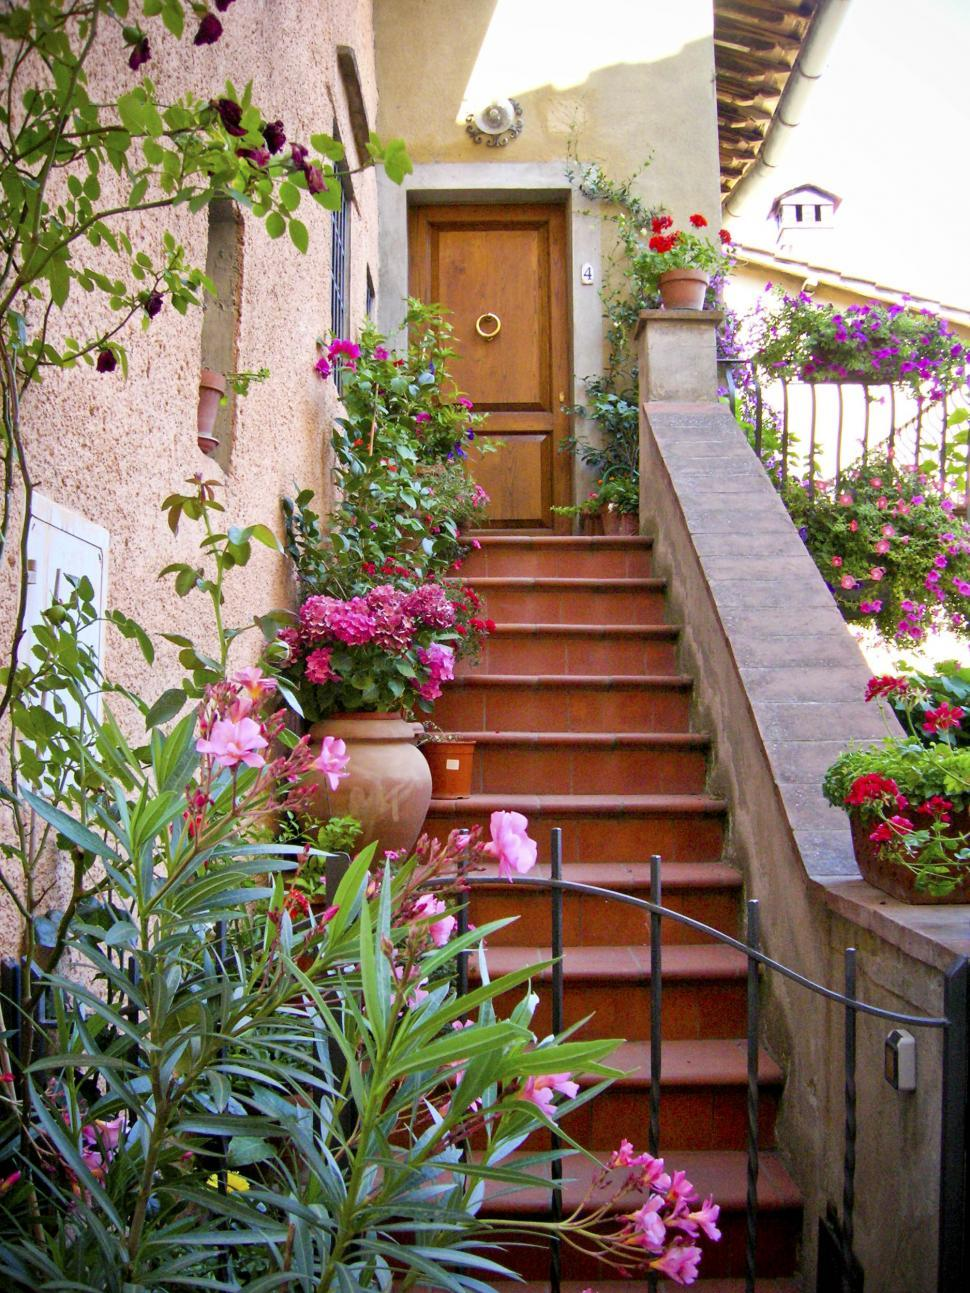 Download Free Stock Photo of flowers on stairs